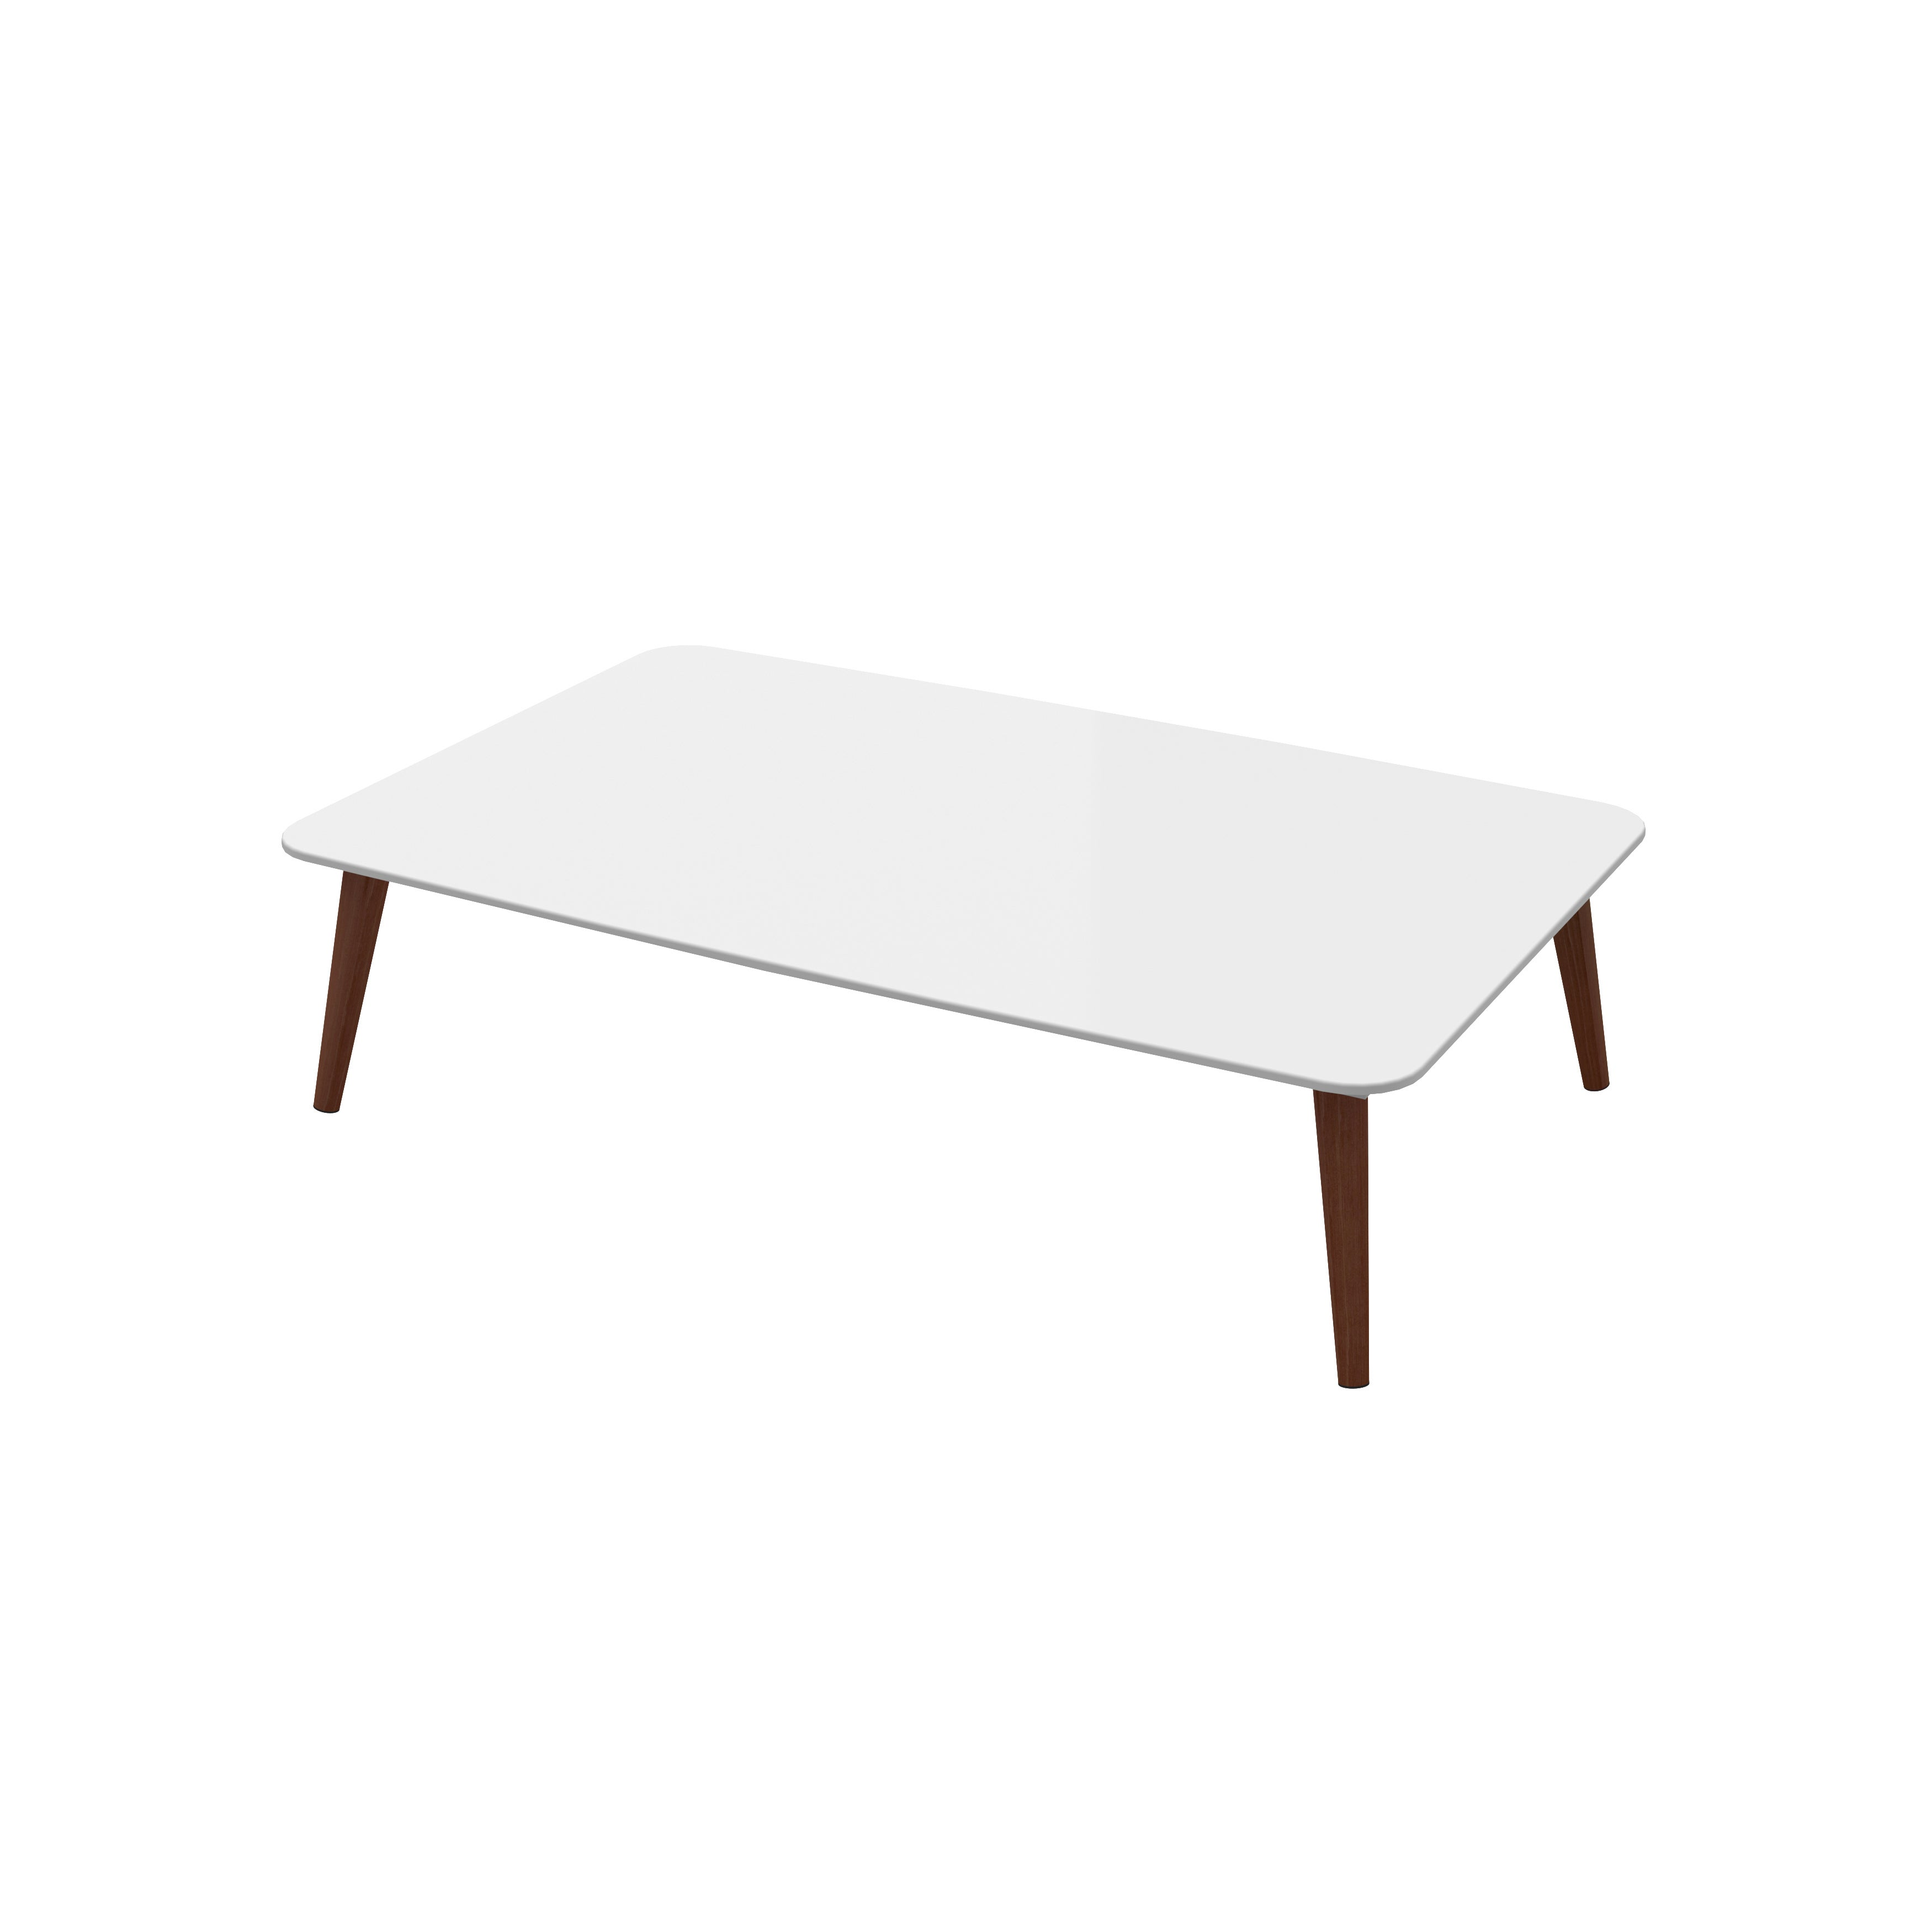 Image of: Shop Black Friday Deals On White Lacquer Spindle Legs Mid Century Coffee Table Overstock 16495835